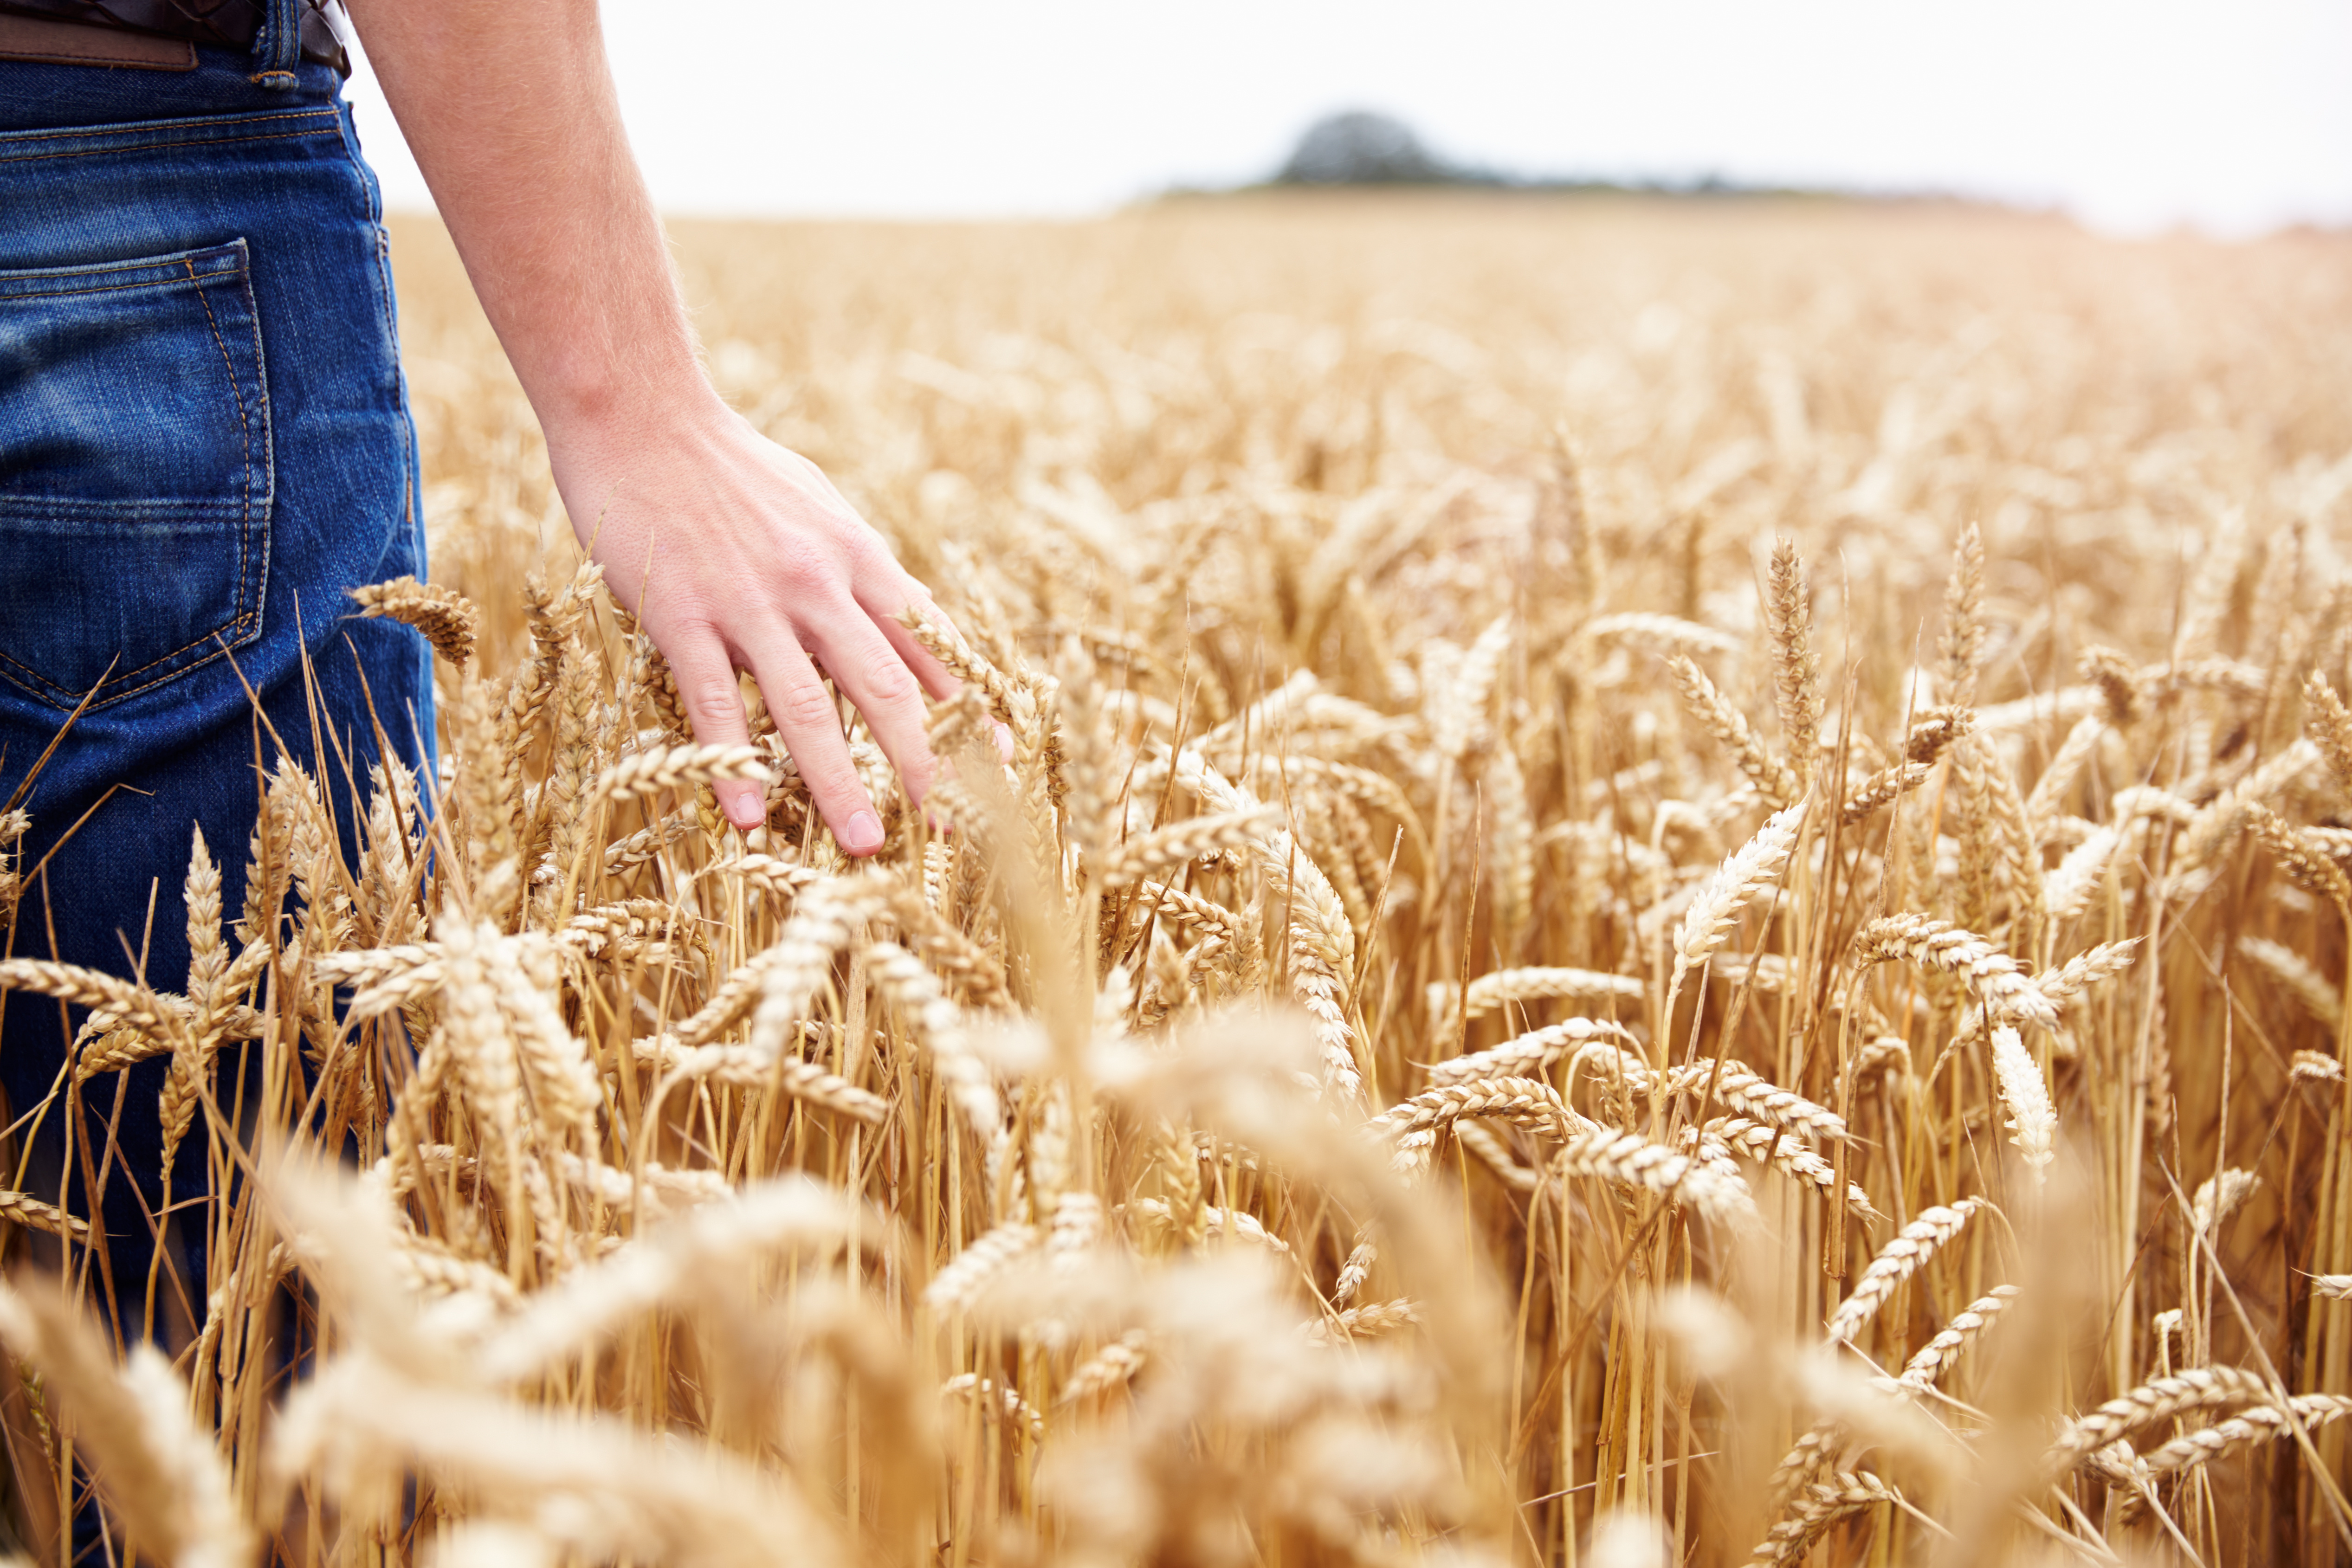 hand grazing wheat field